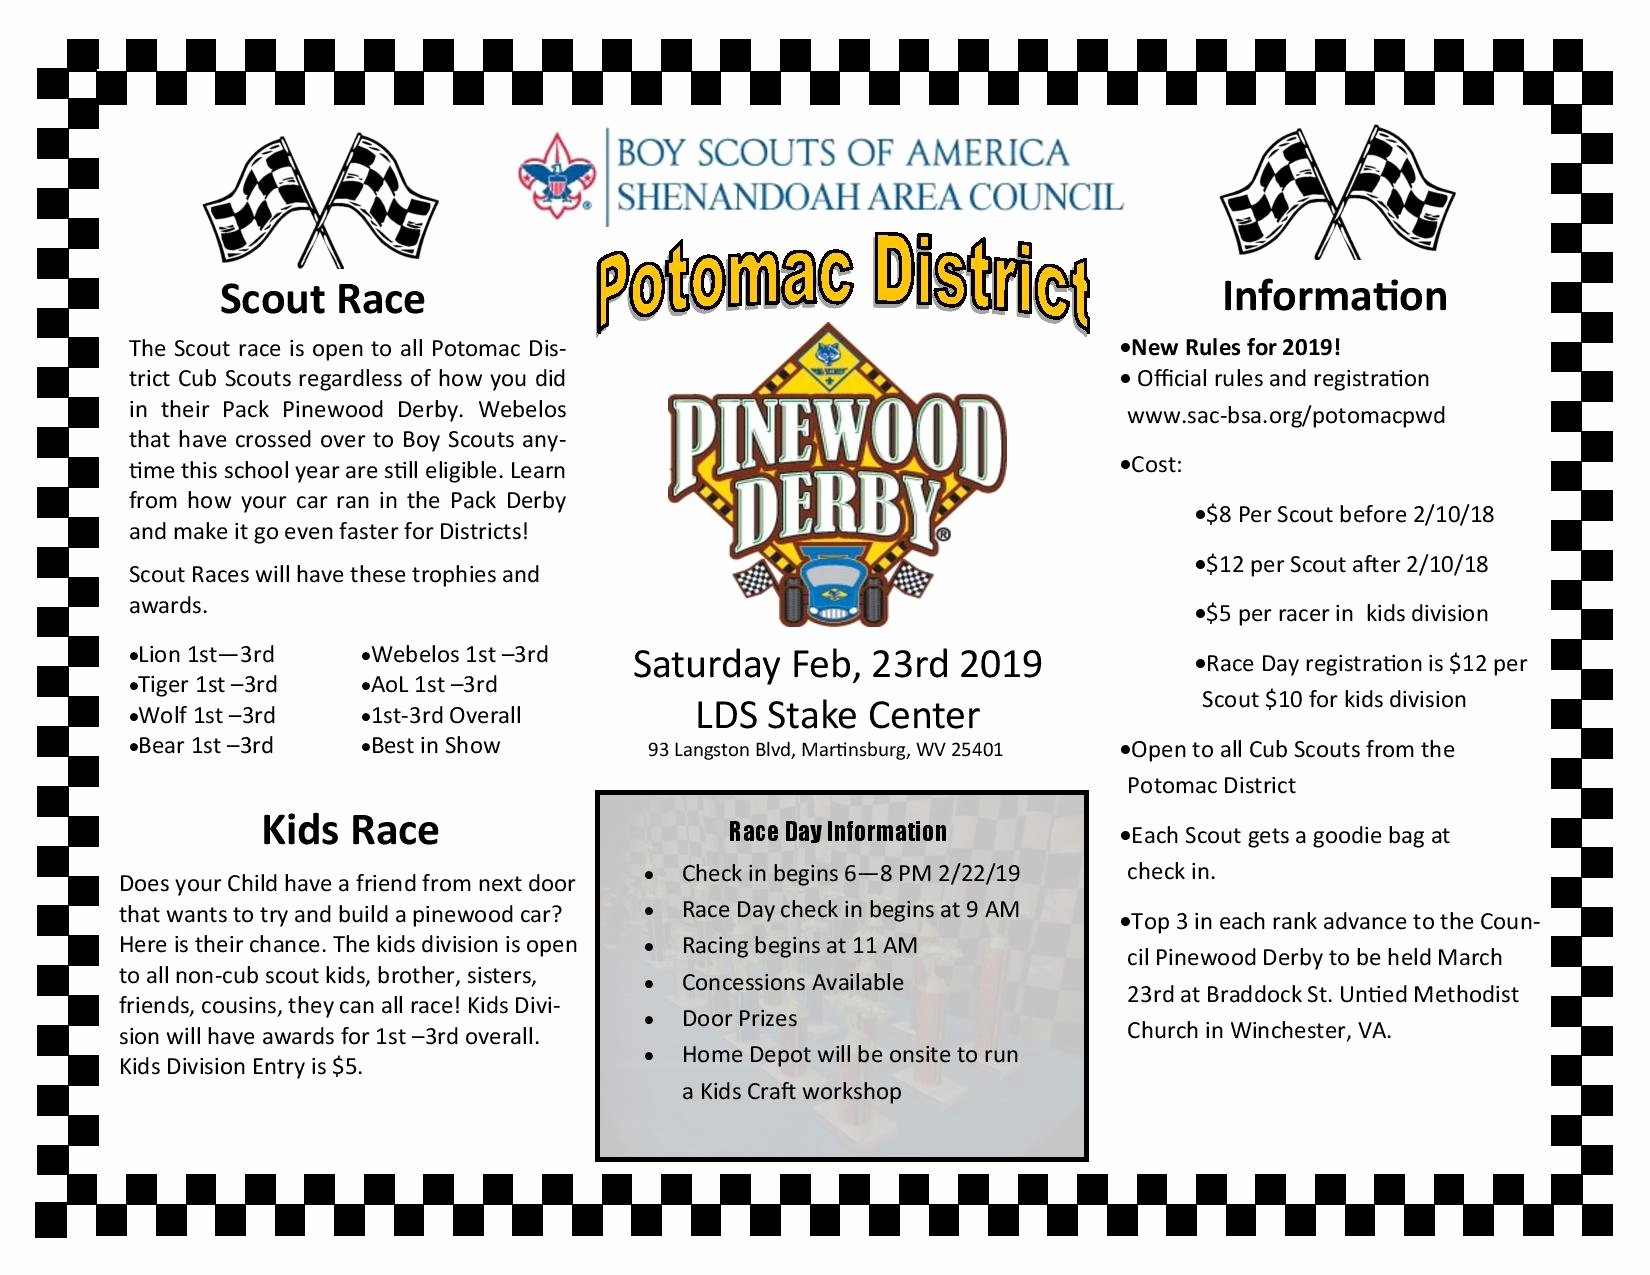 Pinewood Derby Flyer Template Inspirational Potomac District Pinewood Derby Registration